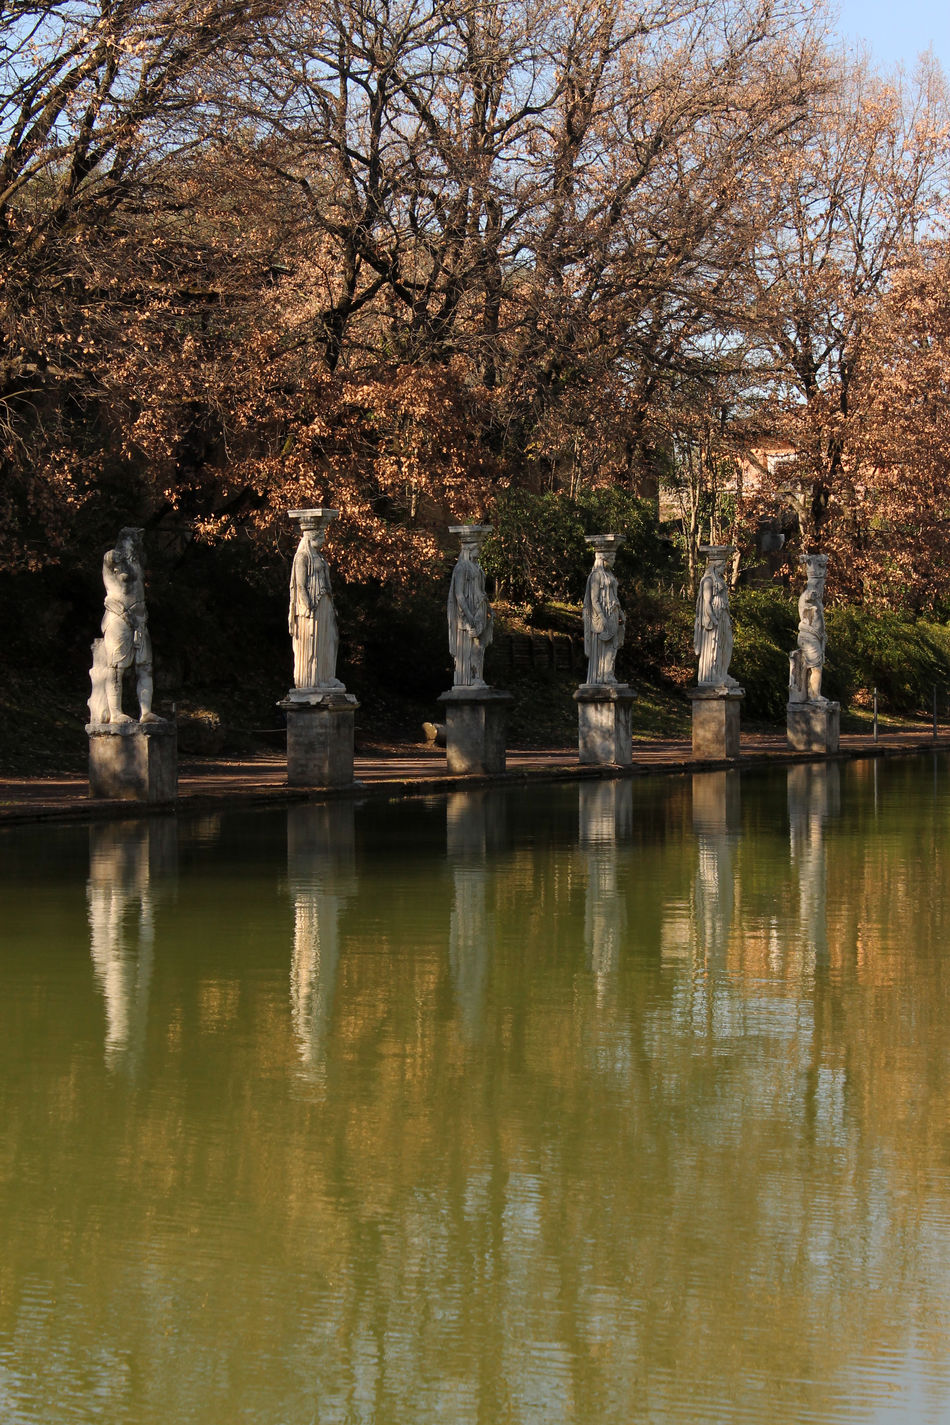 Archeological Site Archeology Art Art Lover Art Photography Beauty In Nature Canopo Cariatidi Day History Mirrored Nature No People Outdoors Reflection Reflection Reflections In The Water Roman Empire Roman Sculpture Sculpture Statue Tree Villa Adriana